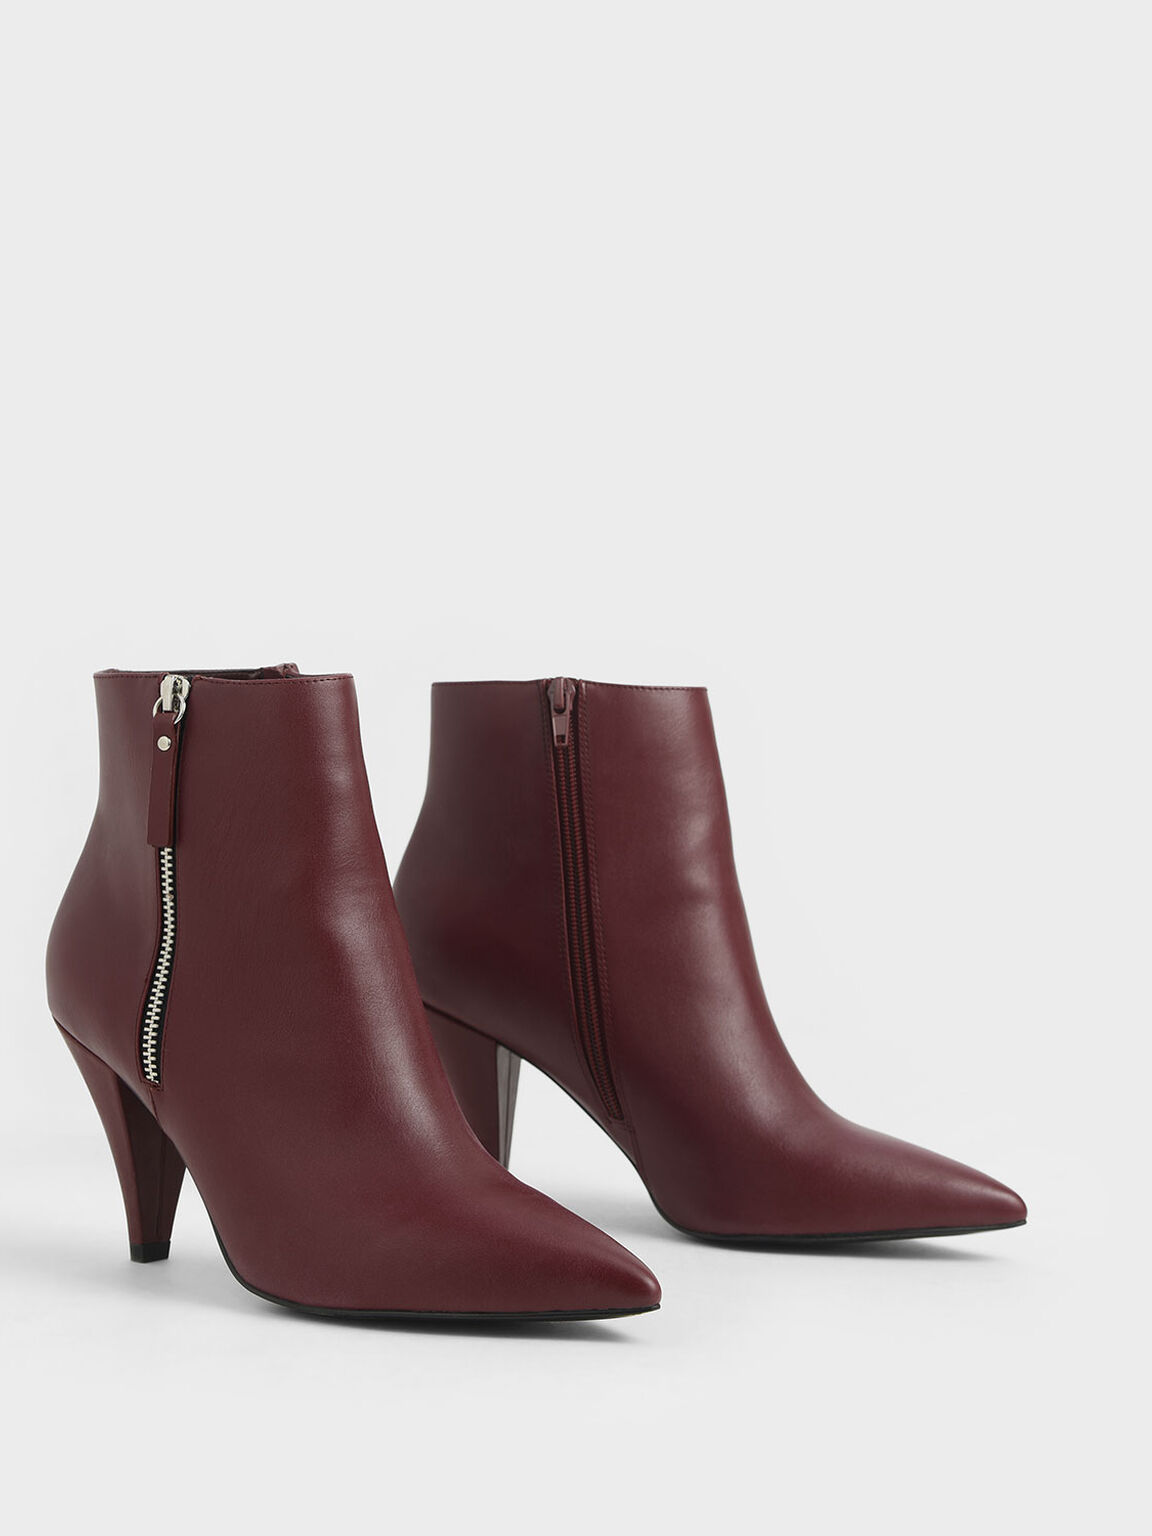 Double Zip Pointed Toe Ankle Boots, Burgundy, hi-res